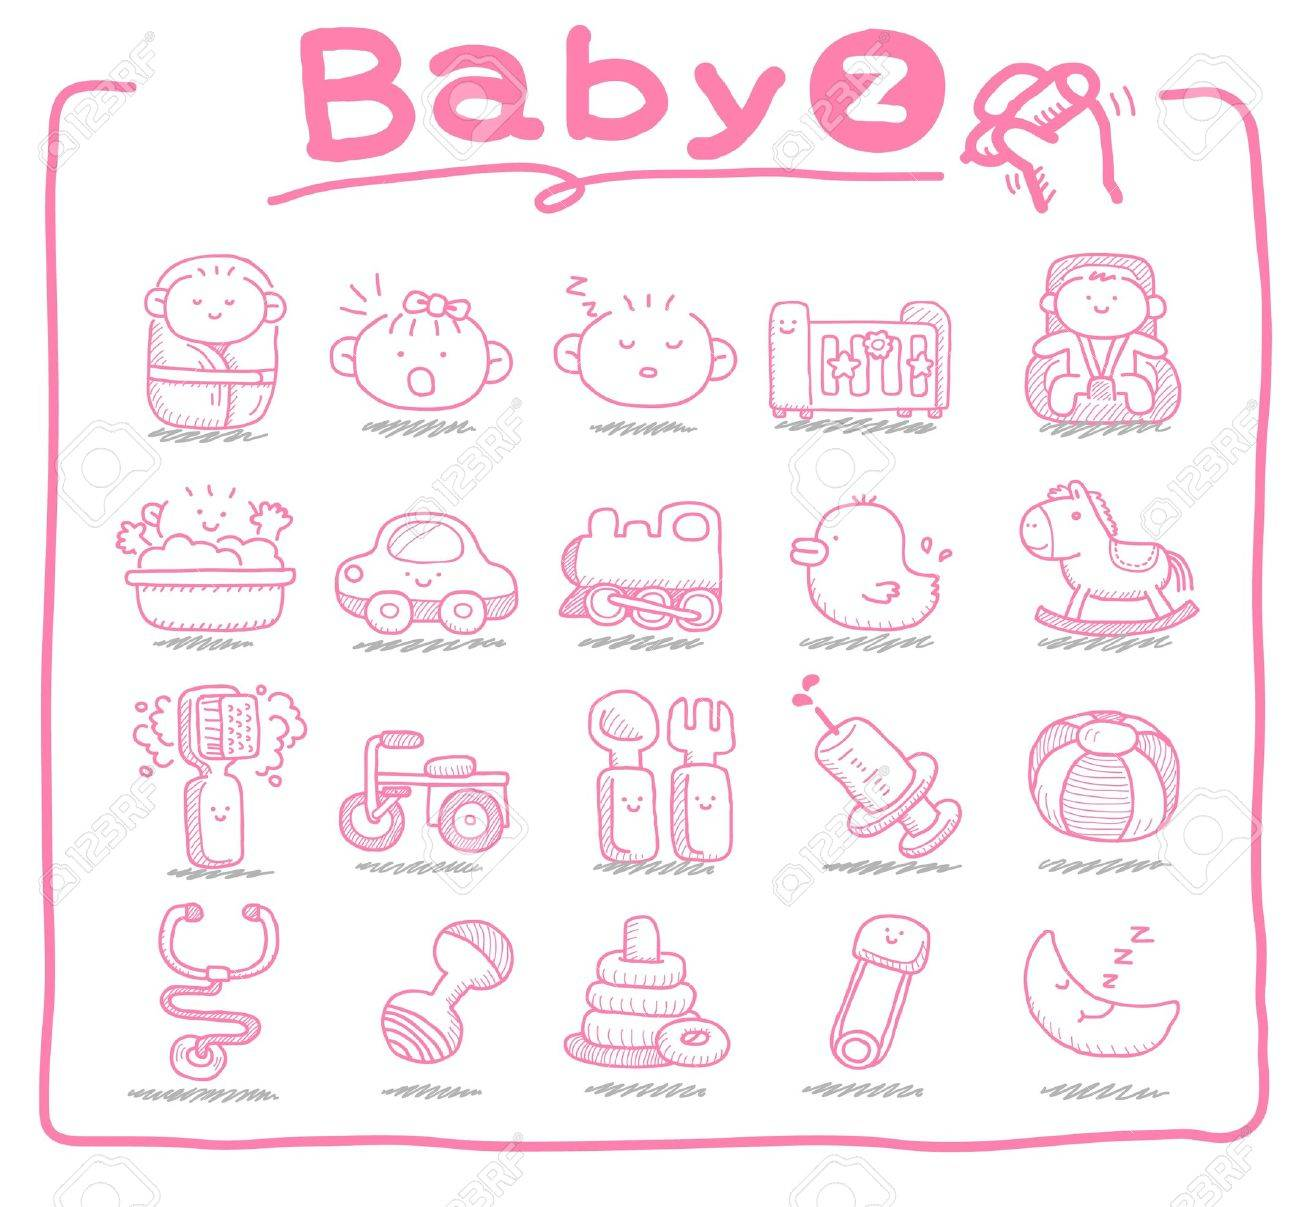 Hand drawn baby icons, baby items, baby toys Stock Vector - 9830360